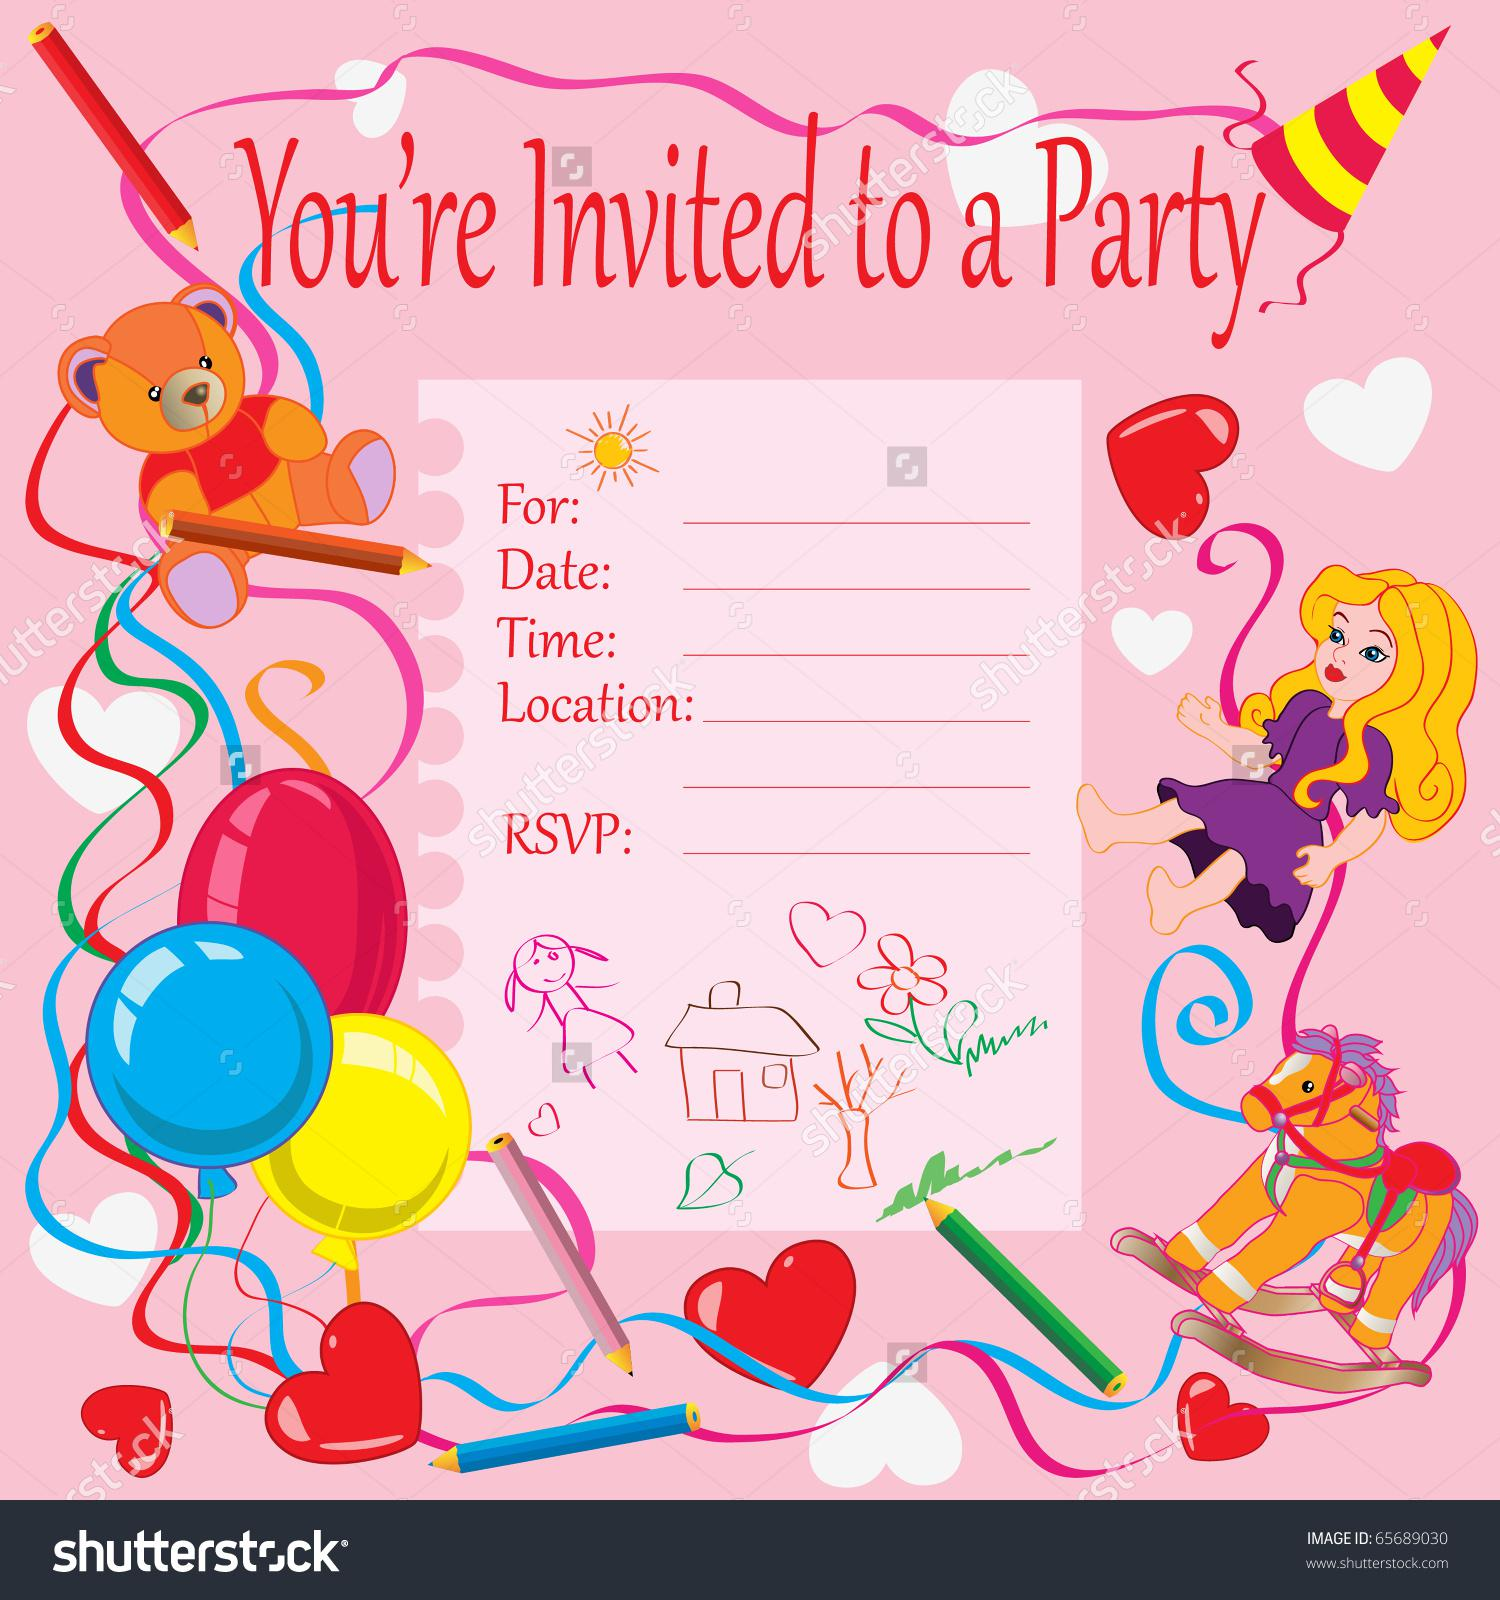 Invitation birthday party card robertottni invitation birthday party card stopboris